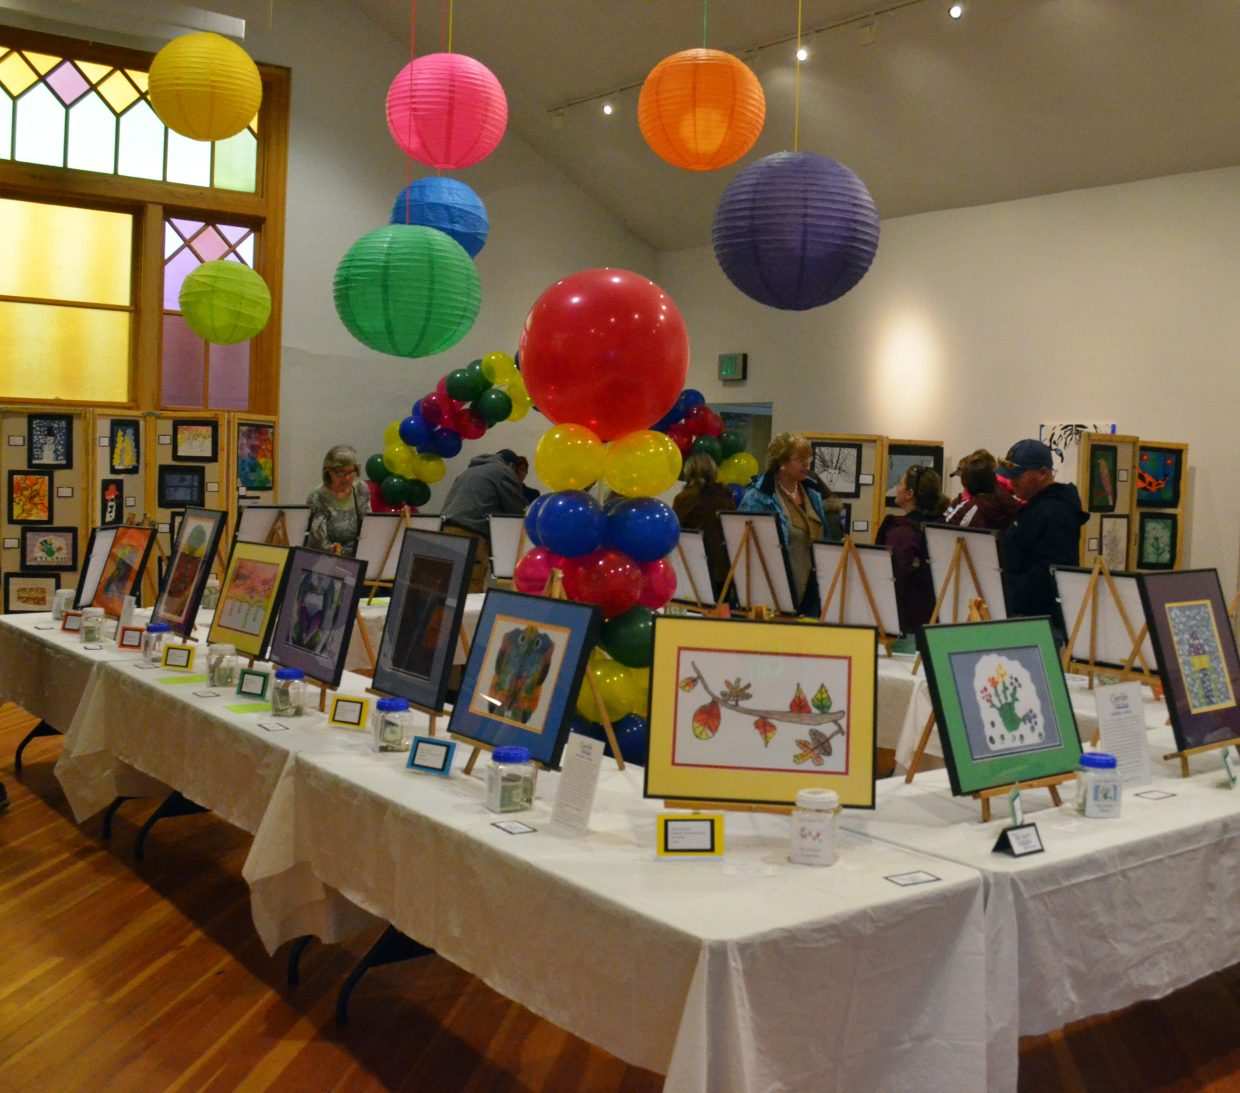 Cherish the Little Things Art Show, hosted by Connections 4 Kids, featured about 300 artworks by area students of all ages.